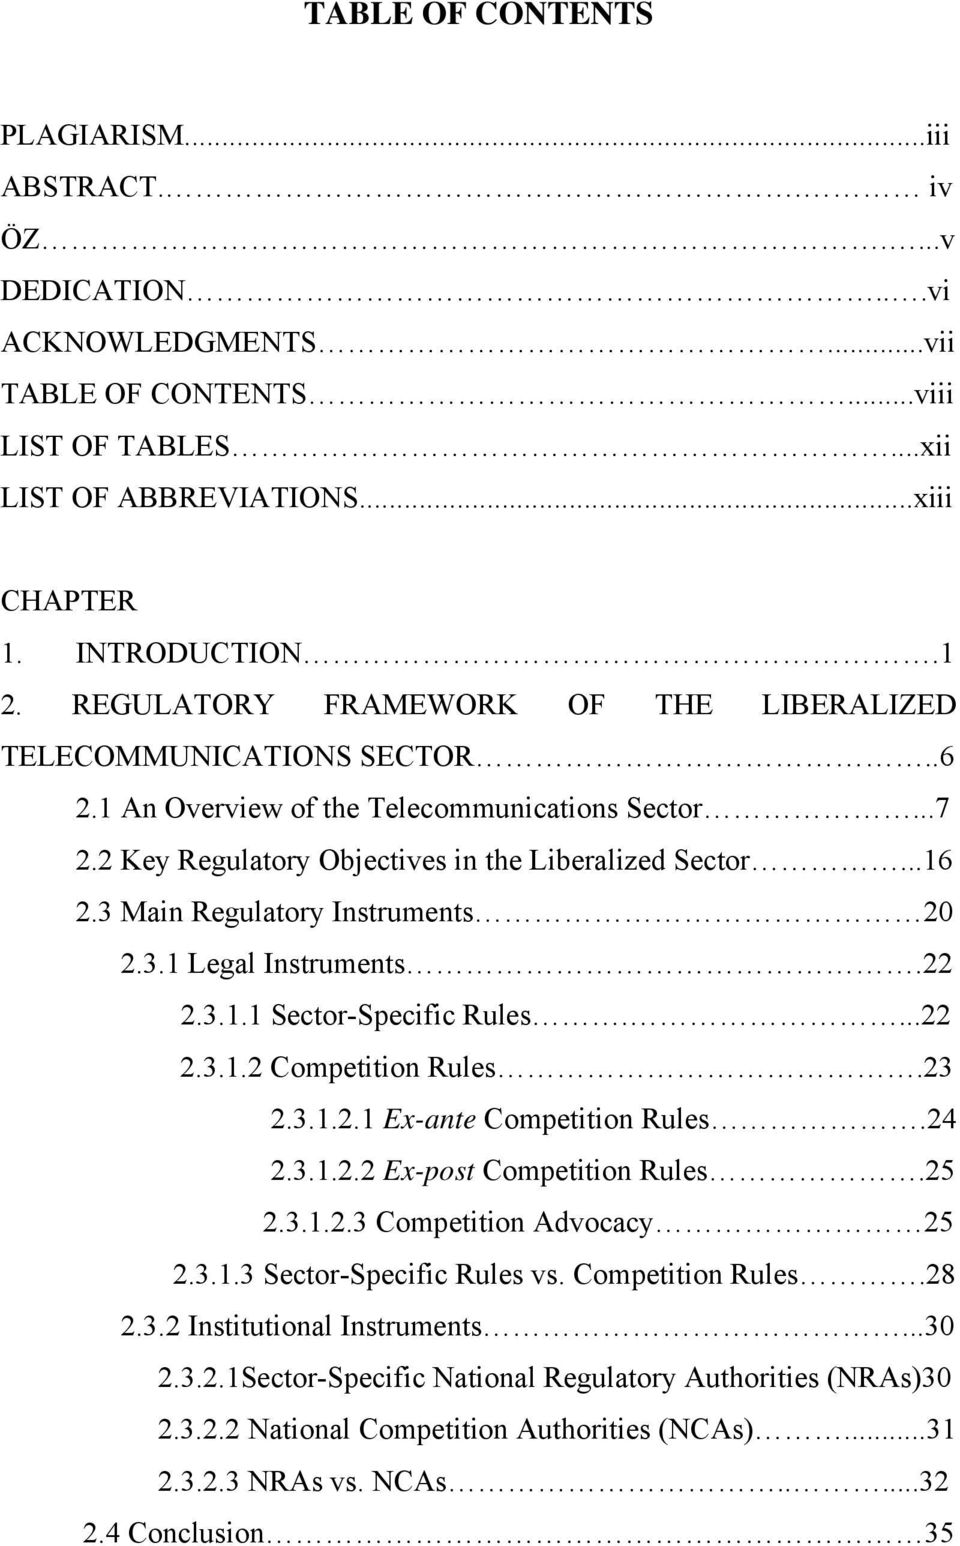 3 Main Regulatory Instruments 20 2.3.1 Legal Instruments.22 2.3.1.1 Sector-Specific Rules....22 2.3.1.2 Competition Rules.23 2.3.1.2.1 Ex-ante Competition Rules.24 2.3.1.2.2 Ex-post Competition Rules.